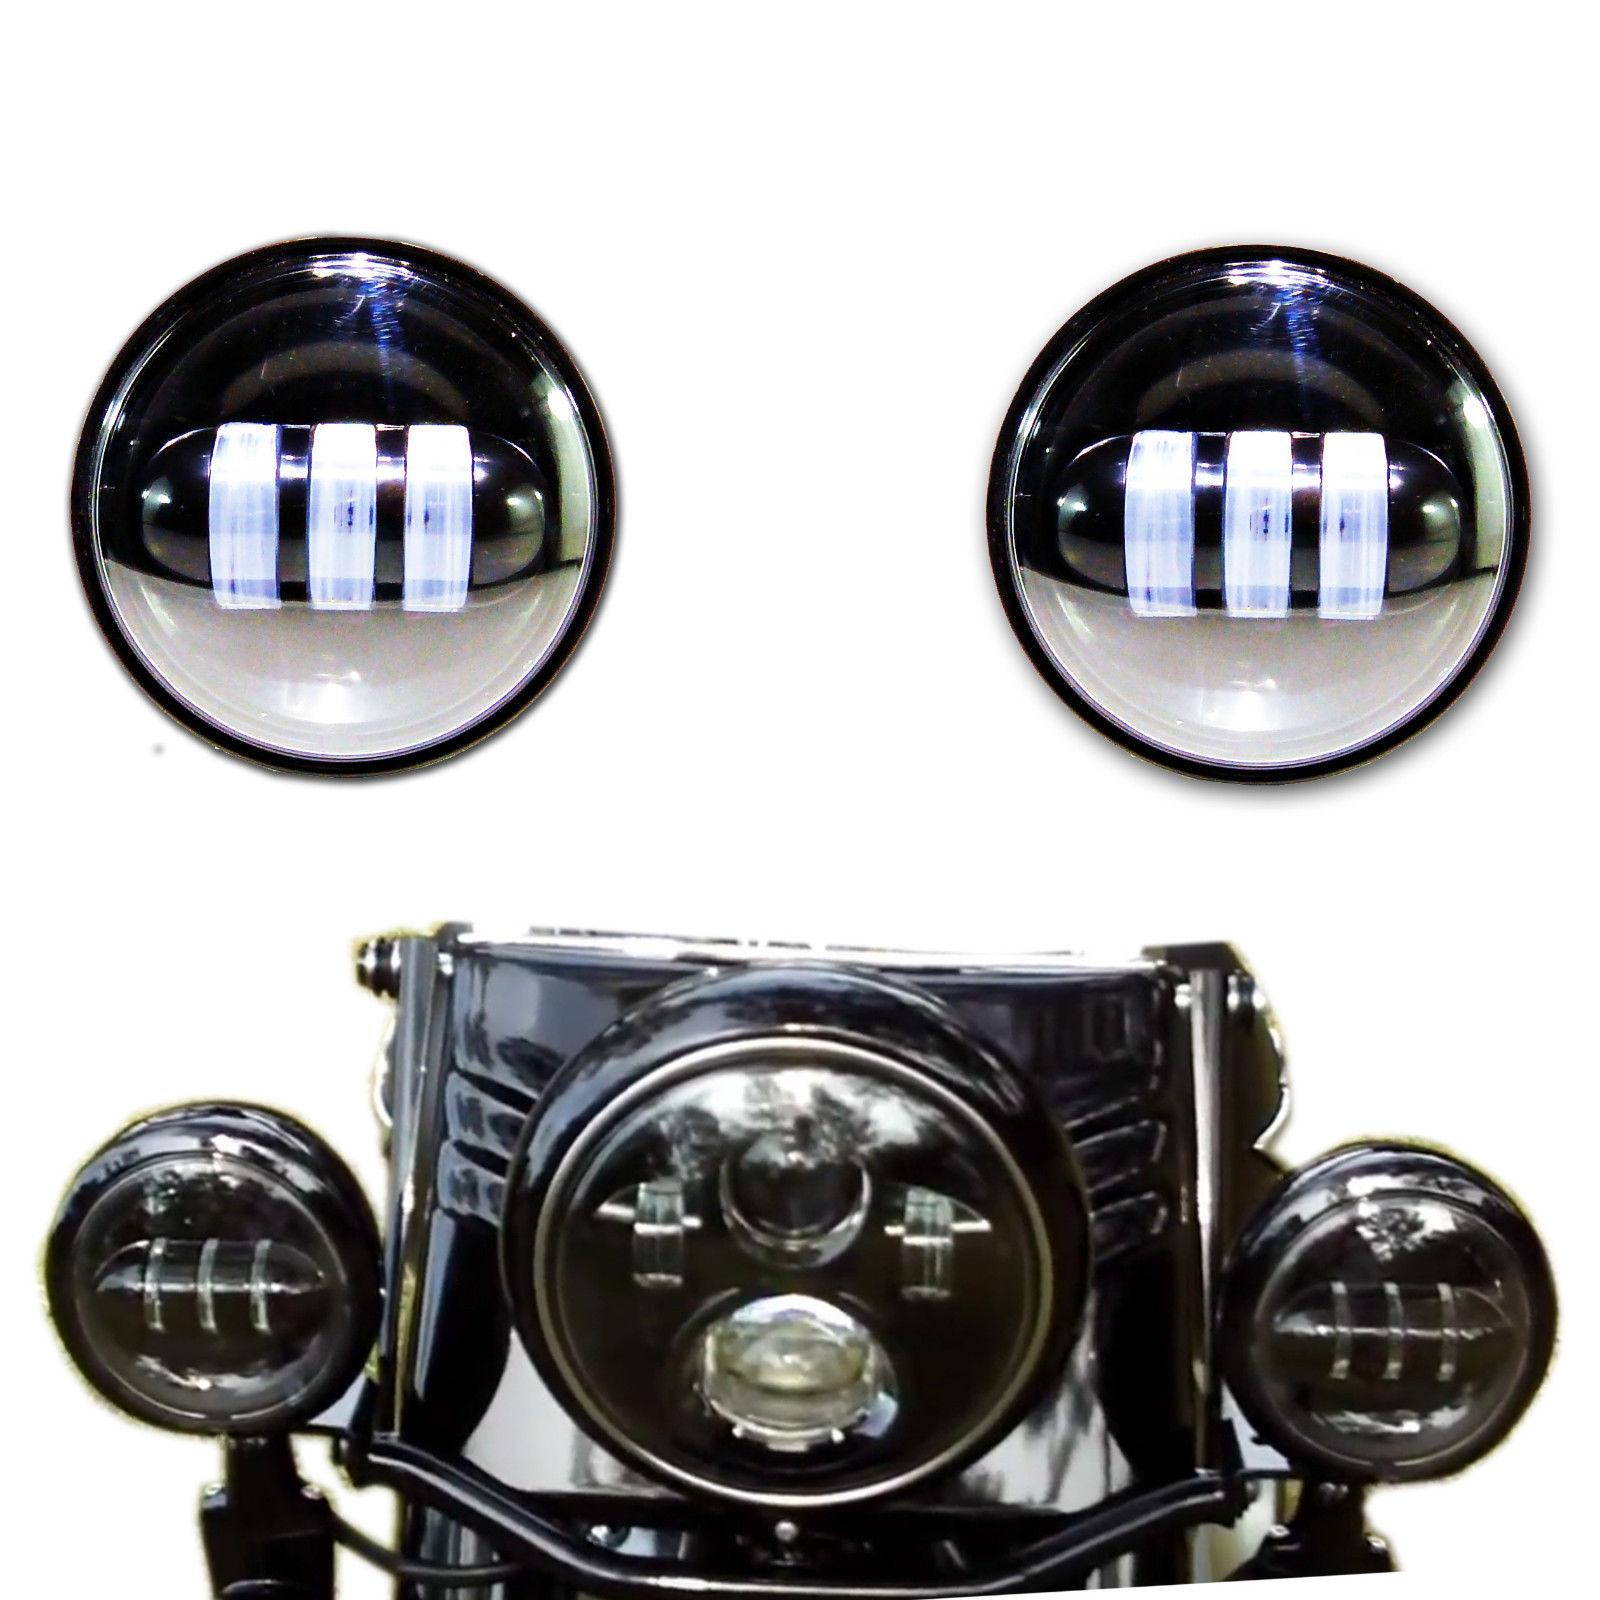 Harley Running Lights Wiring Diagrams Schematics Model Capacitor Trane 2wcc3024a1000aa 2018 4 5 Led Auxiliary Spot Light Fog Lamp 1 2 Moto